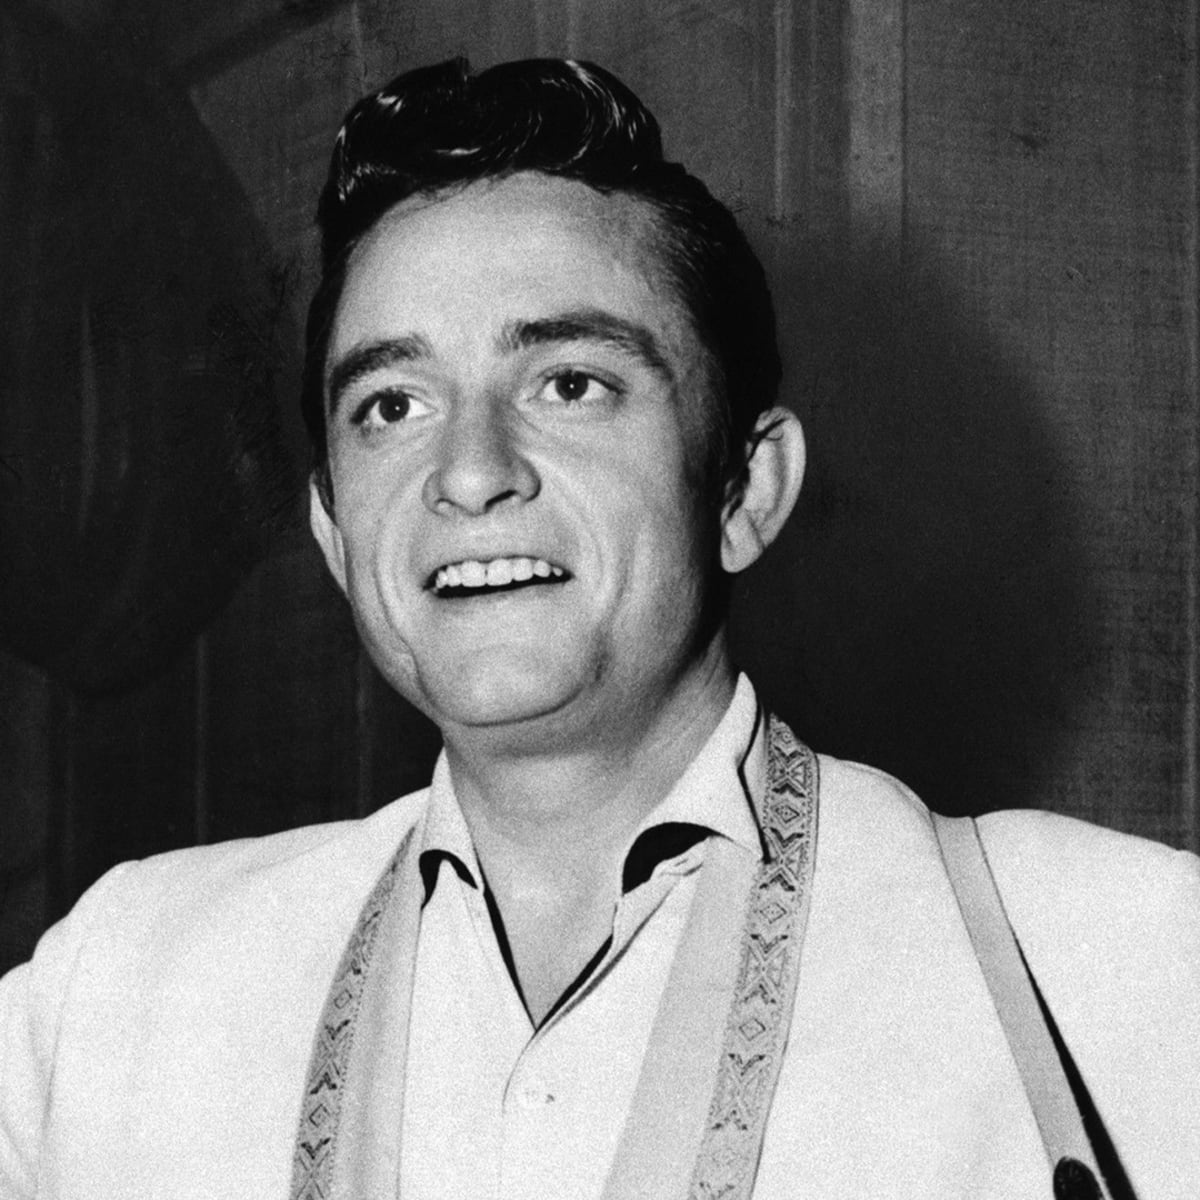 Johnny Cash 10 Things You Might Not Know About The Country Icon Biography